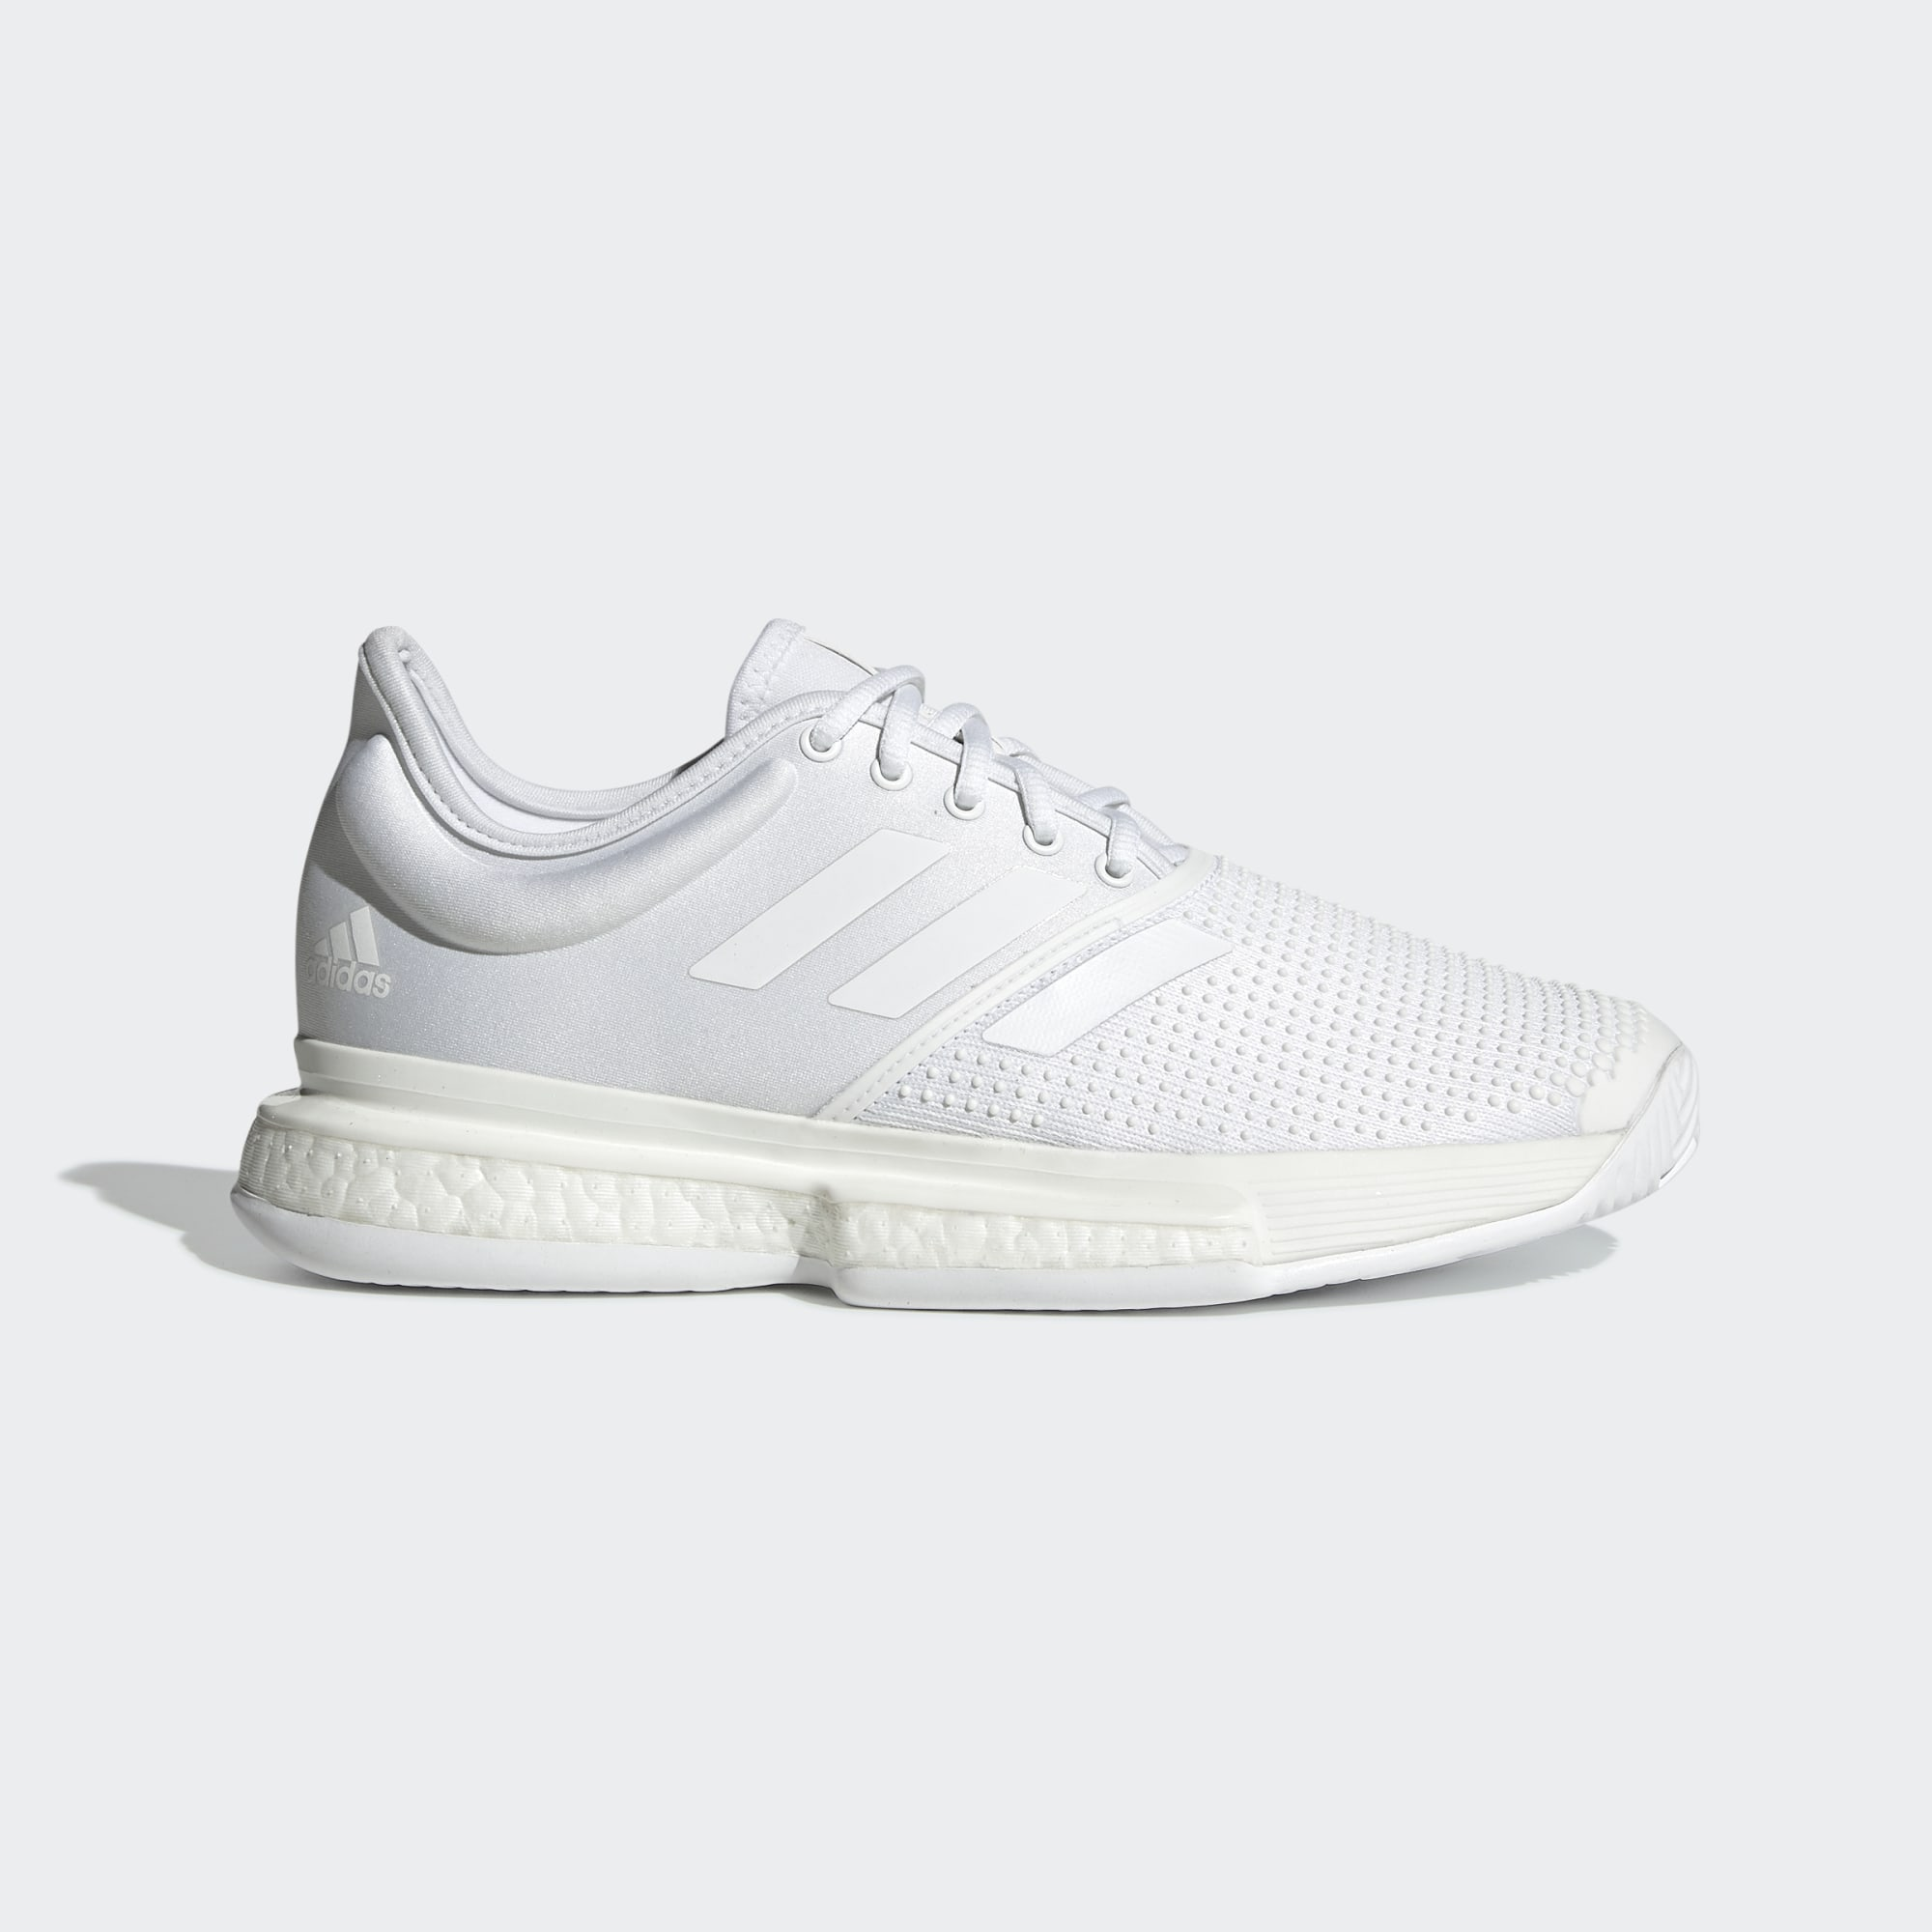 Sole_Court_Boost_x_Parley_Shoes_White_EF2073_01_standard.jpg